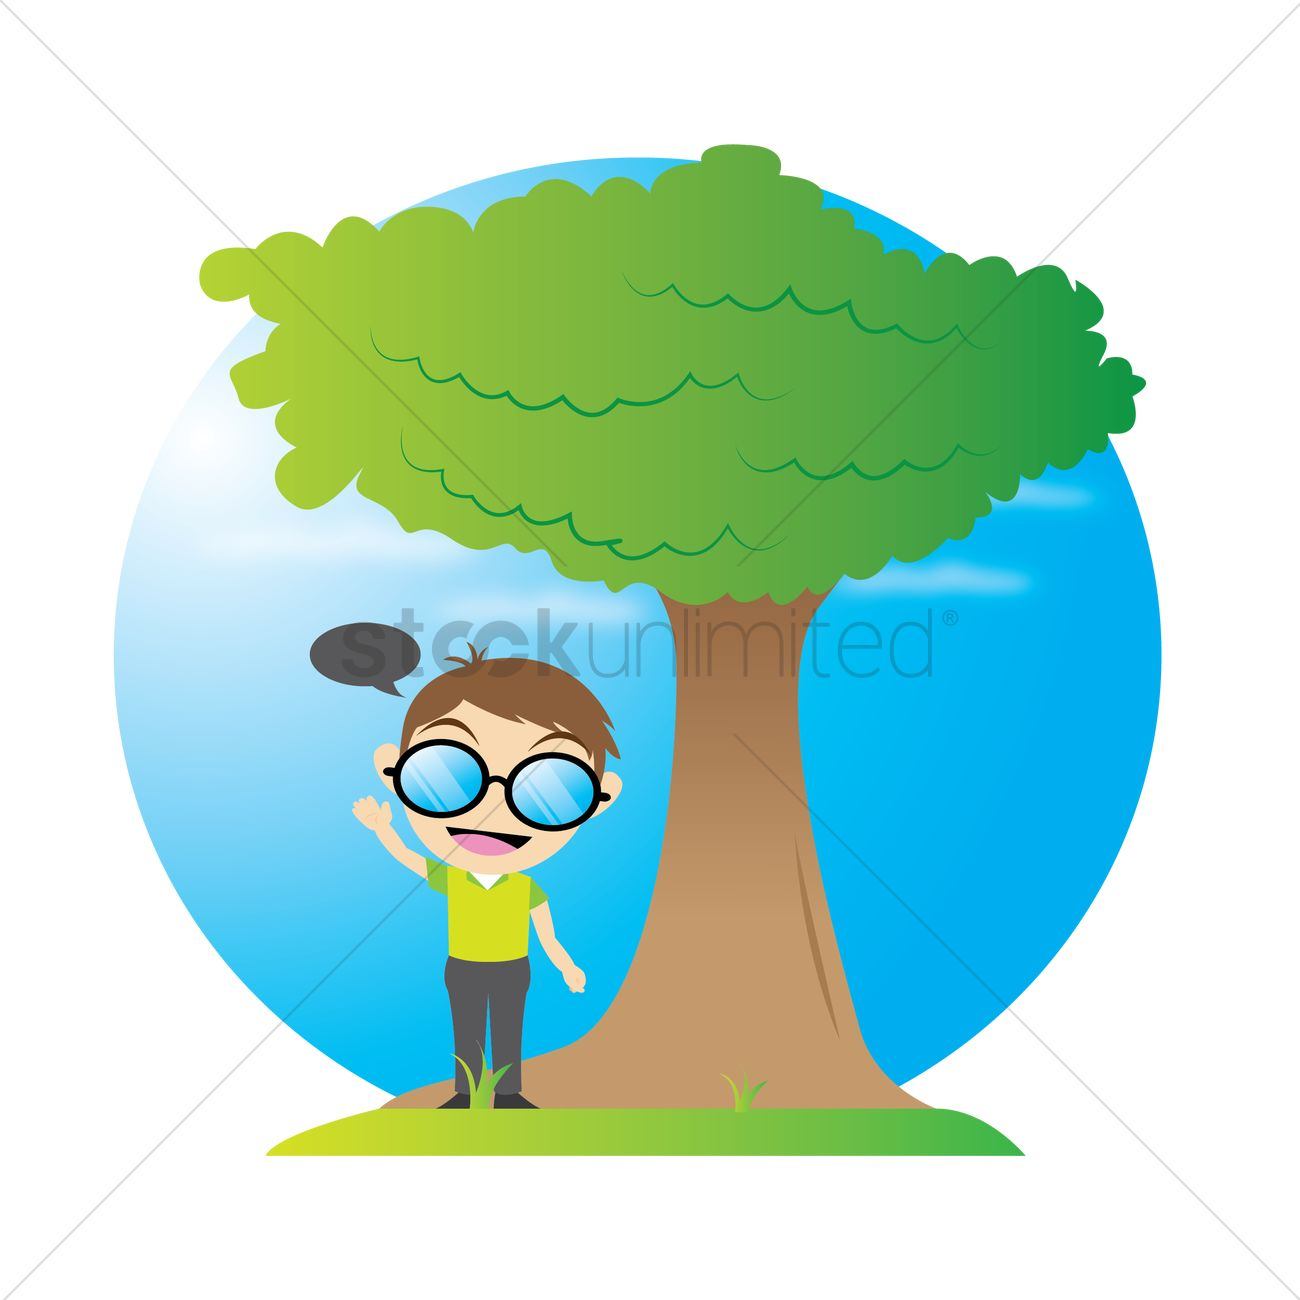 Boy With Speech Bubble Standing Under Tree Vector Image 1428683 Stockunlimited 590 x 743 jpeg 69 кб. boy with speech bubble standing under